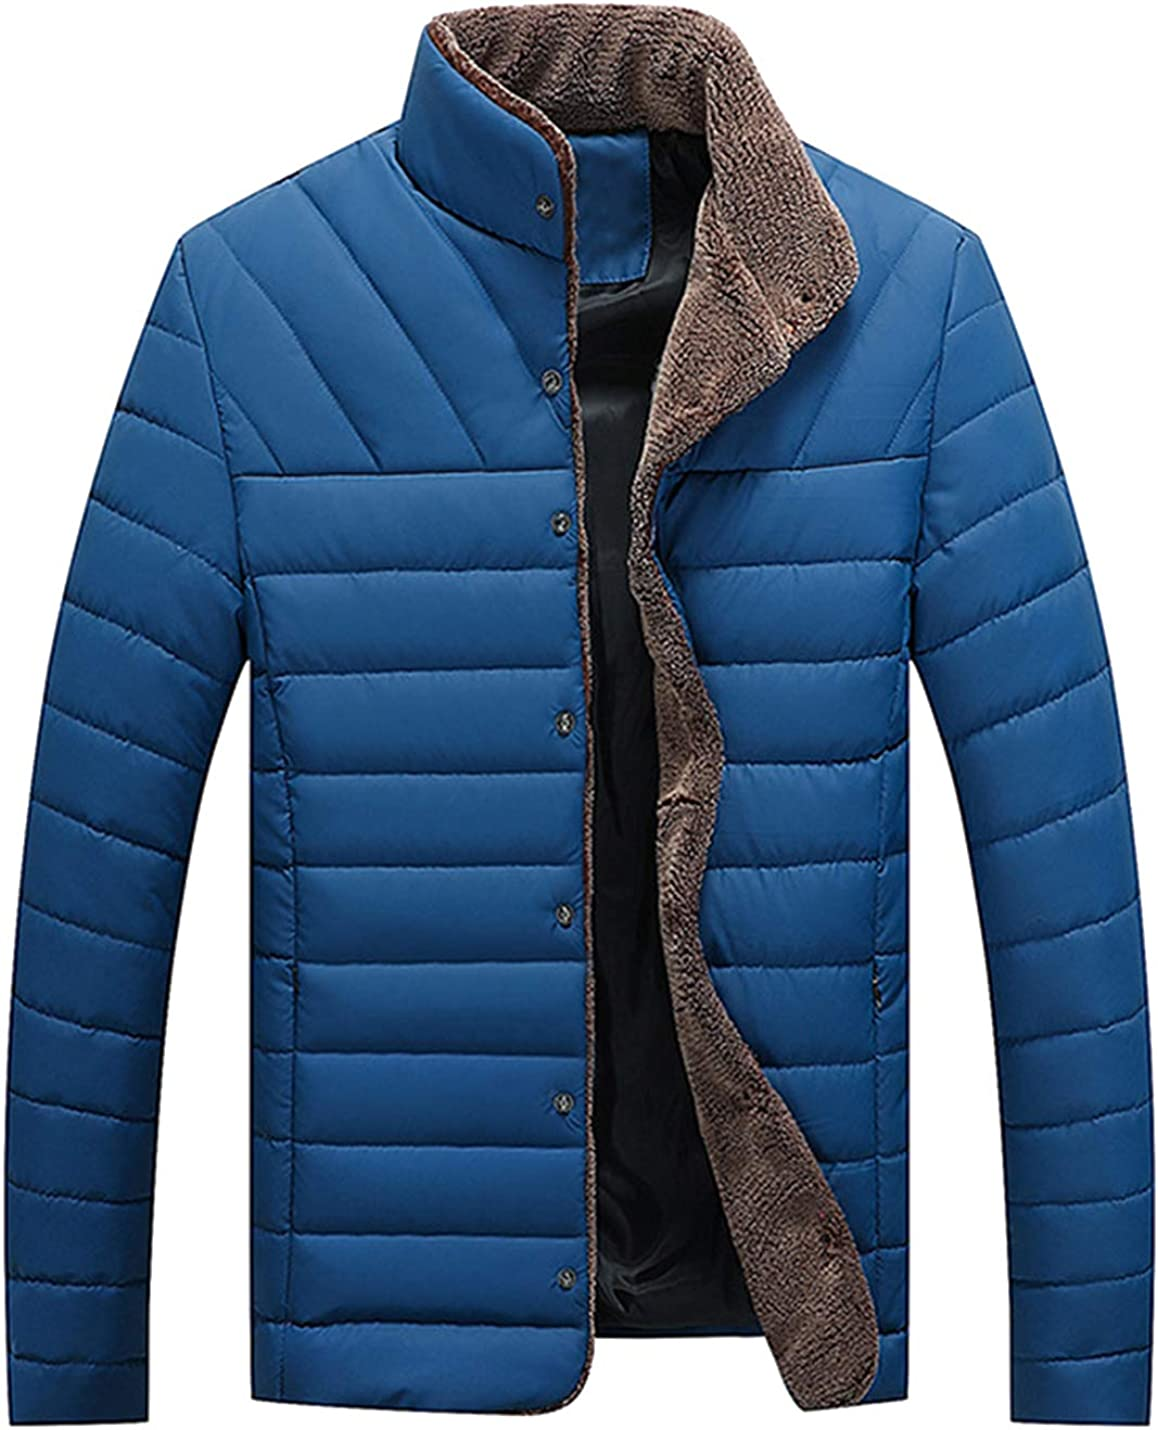 HaoMay Men's Winter Button Down Cotton-Padded Coat Stand Collar Quilted Jacket